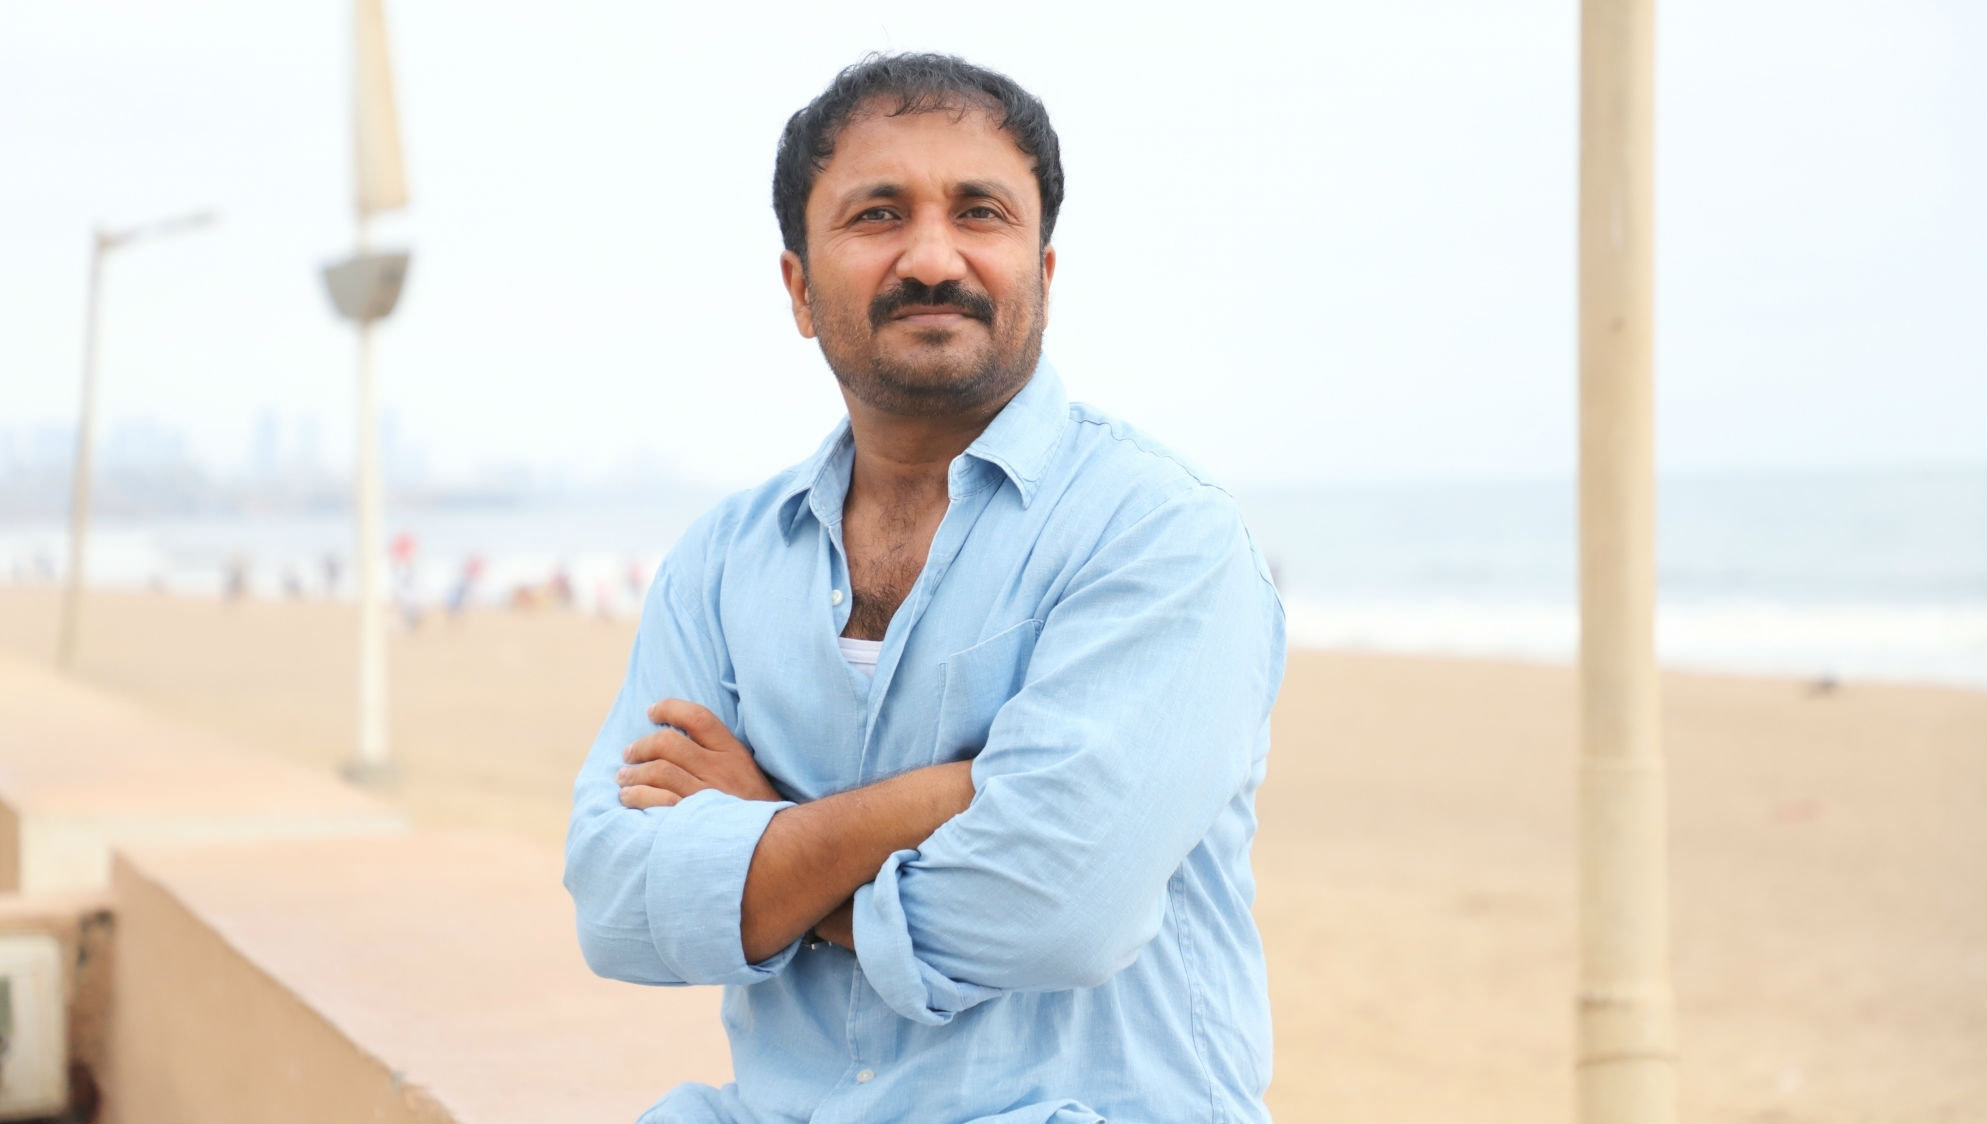 Super 30 Founder Anand Kumar to Address World Tolerance Summit in Dubai